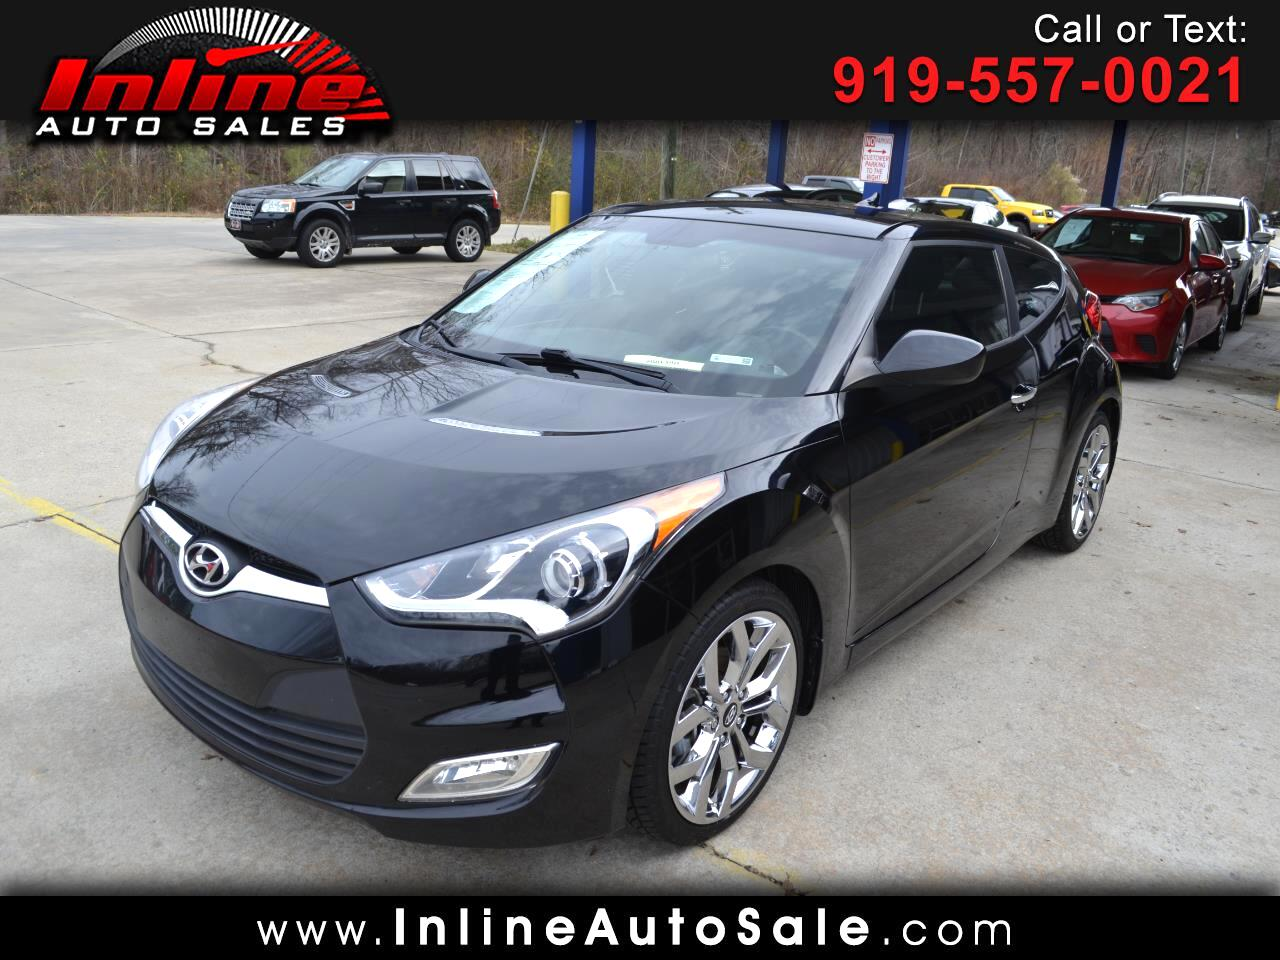 2015 Hyundai Veloster 3dr Cpe Auto RE:FLEX w/Black Int